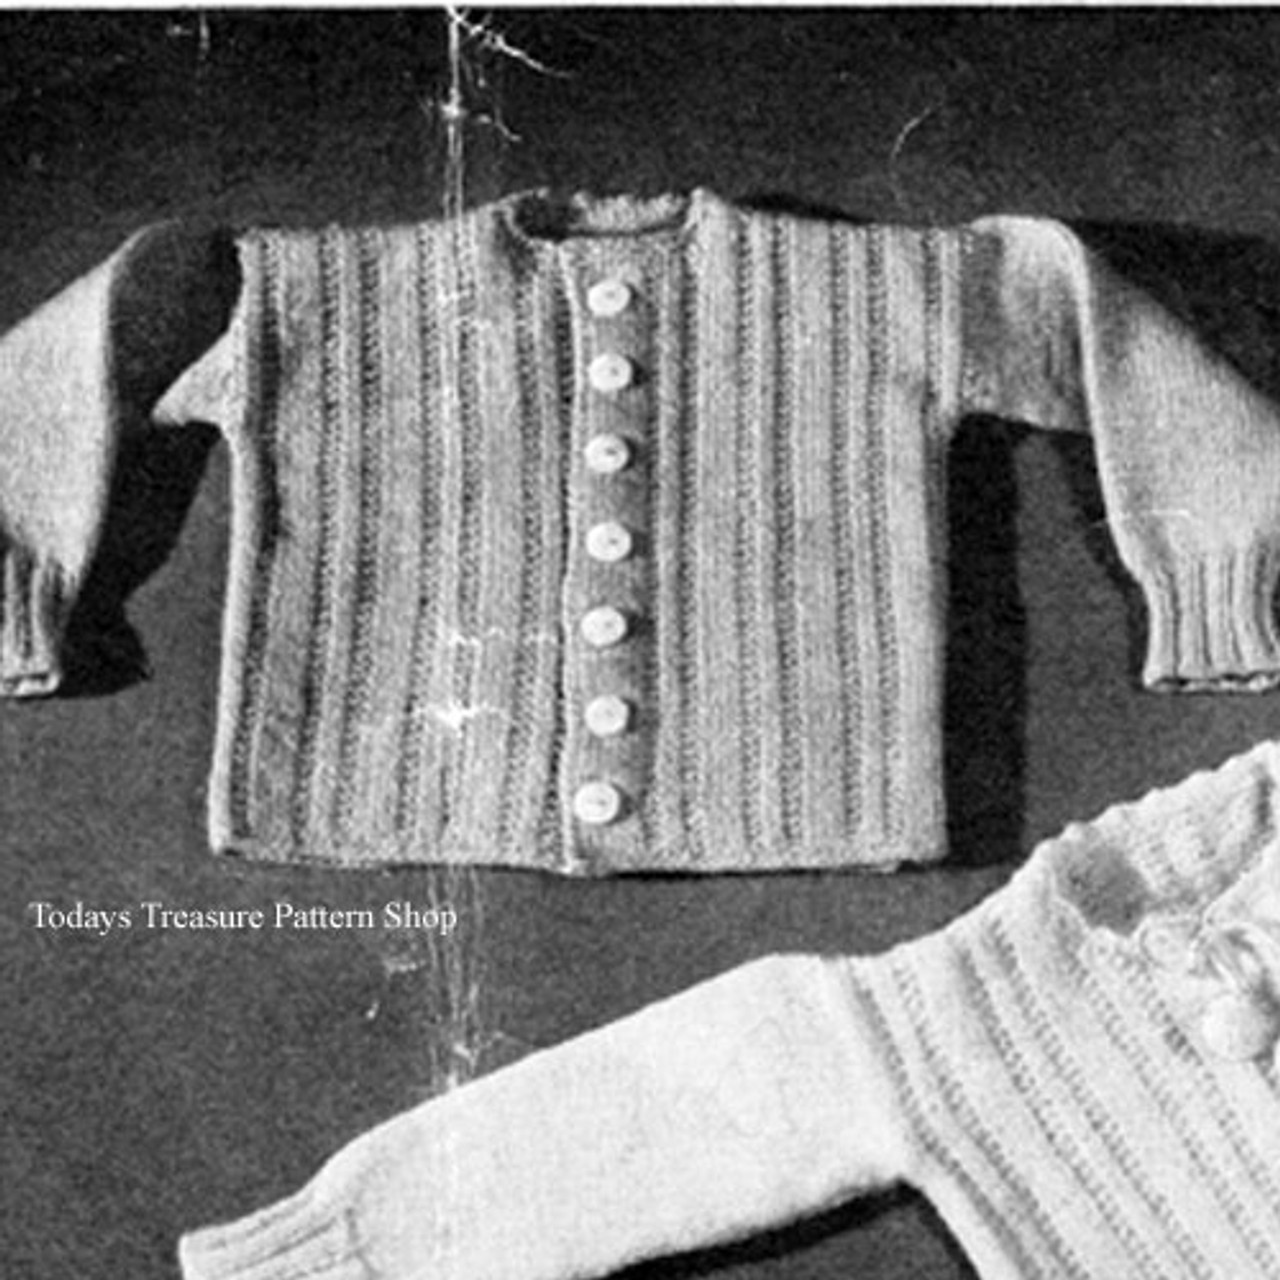 Knitted baby twin set pattern, vintage 1940s